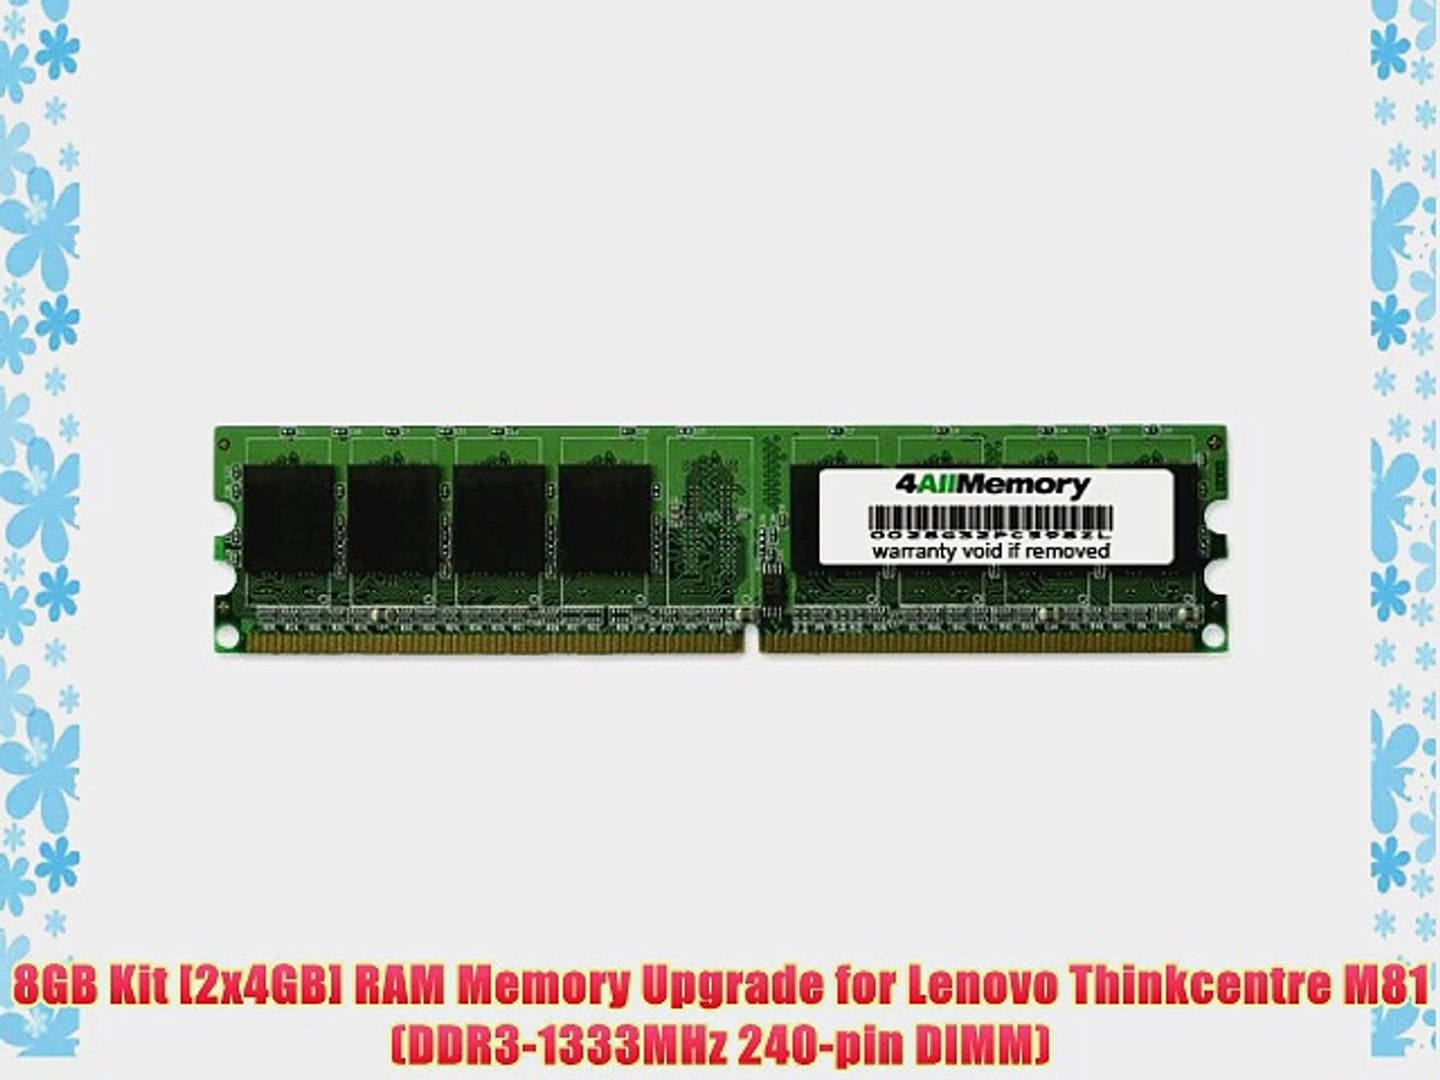 8GB Kit [2x4GB] RAM Memory Upgrade for Lenovo Thinkcentre M81 (DDR3-1333MHz  240-pin DIMM)